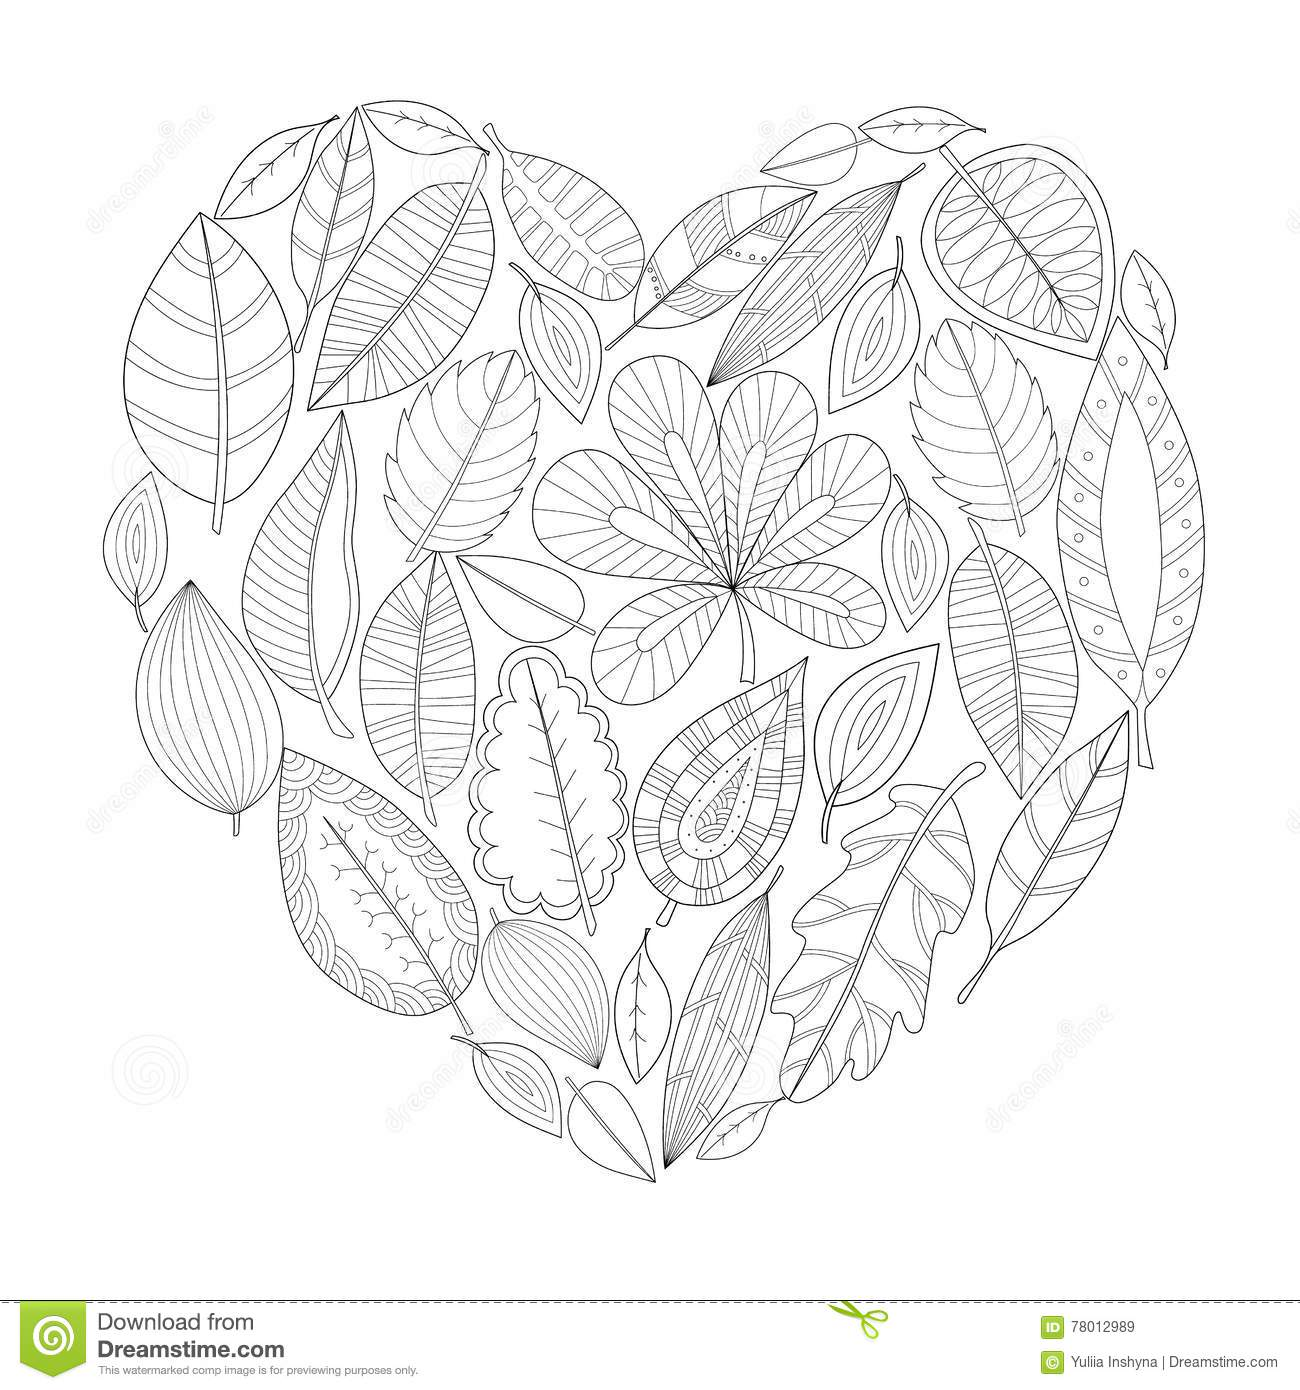 Leaf Templates & Leaf Coloring Pages for Kids | Leaf Printables | 800x800